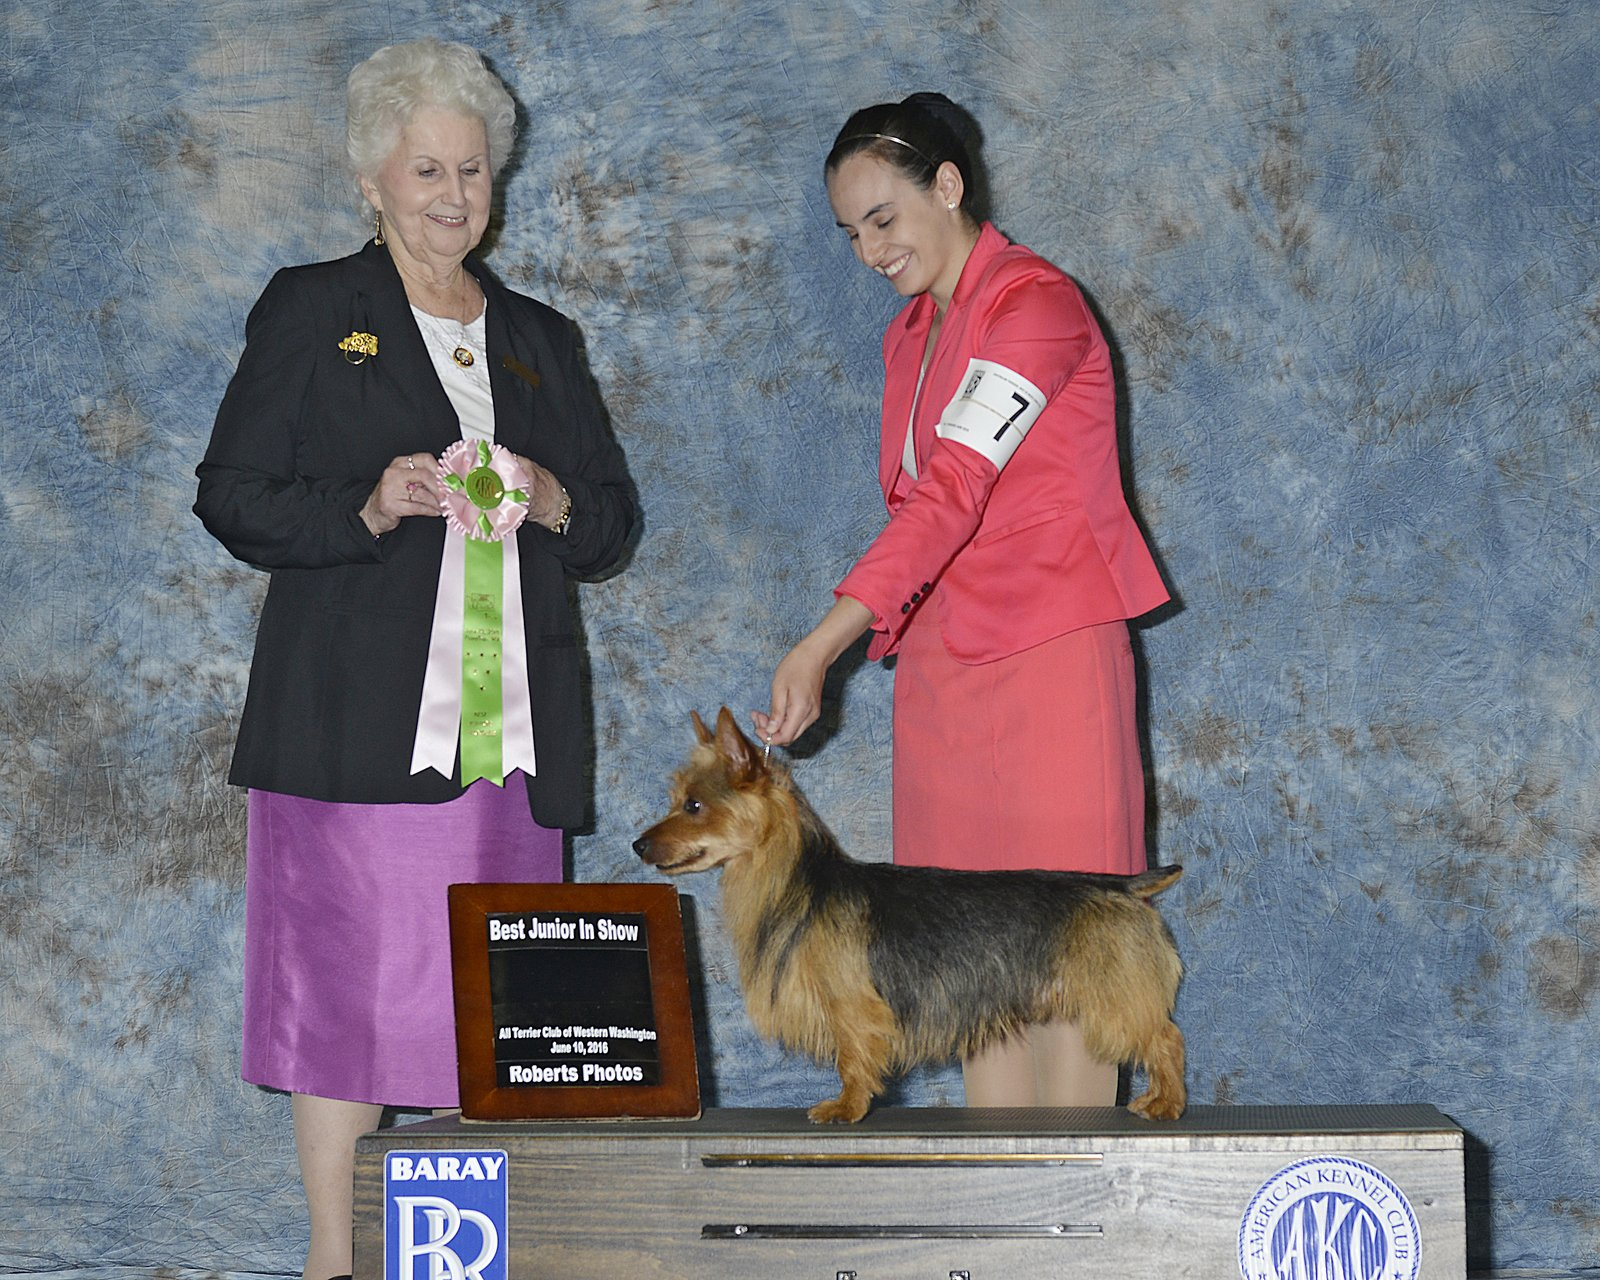 Baray Dog Show Superintendent